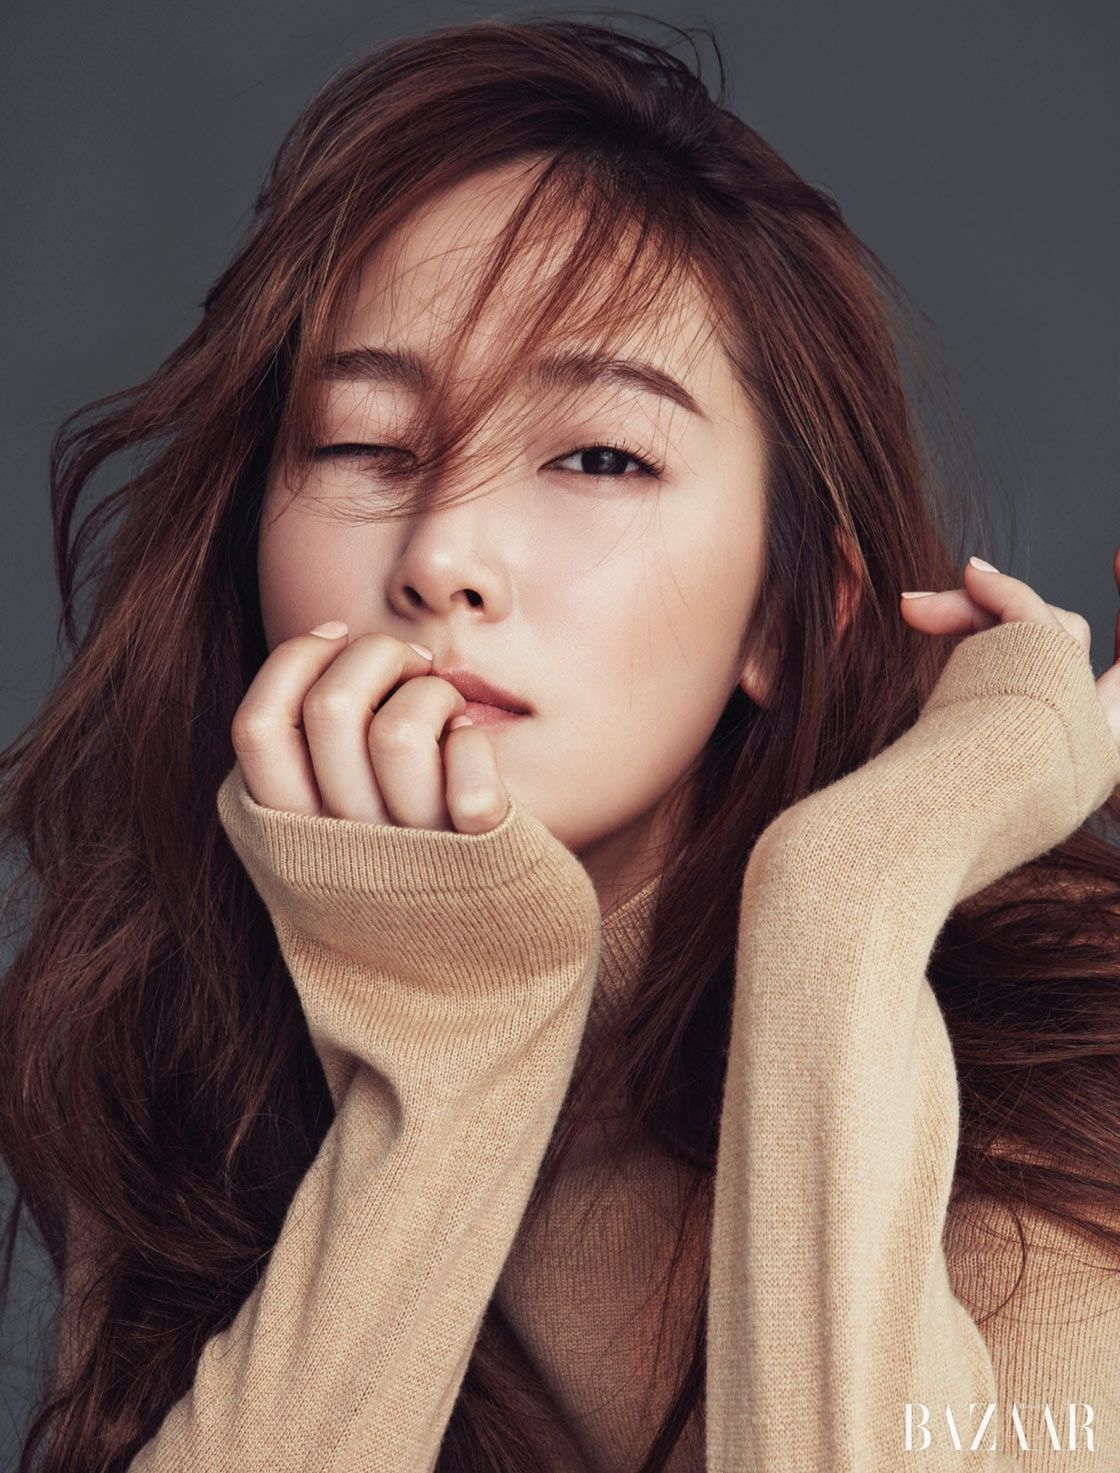 I Surrender My Heart: A Portrait of Jessica for Her 31st